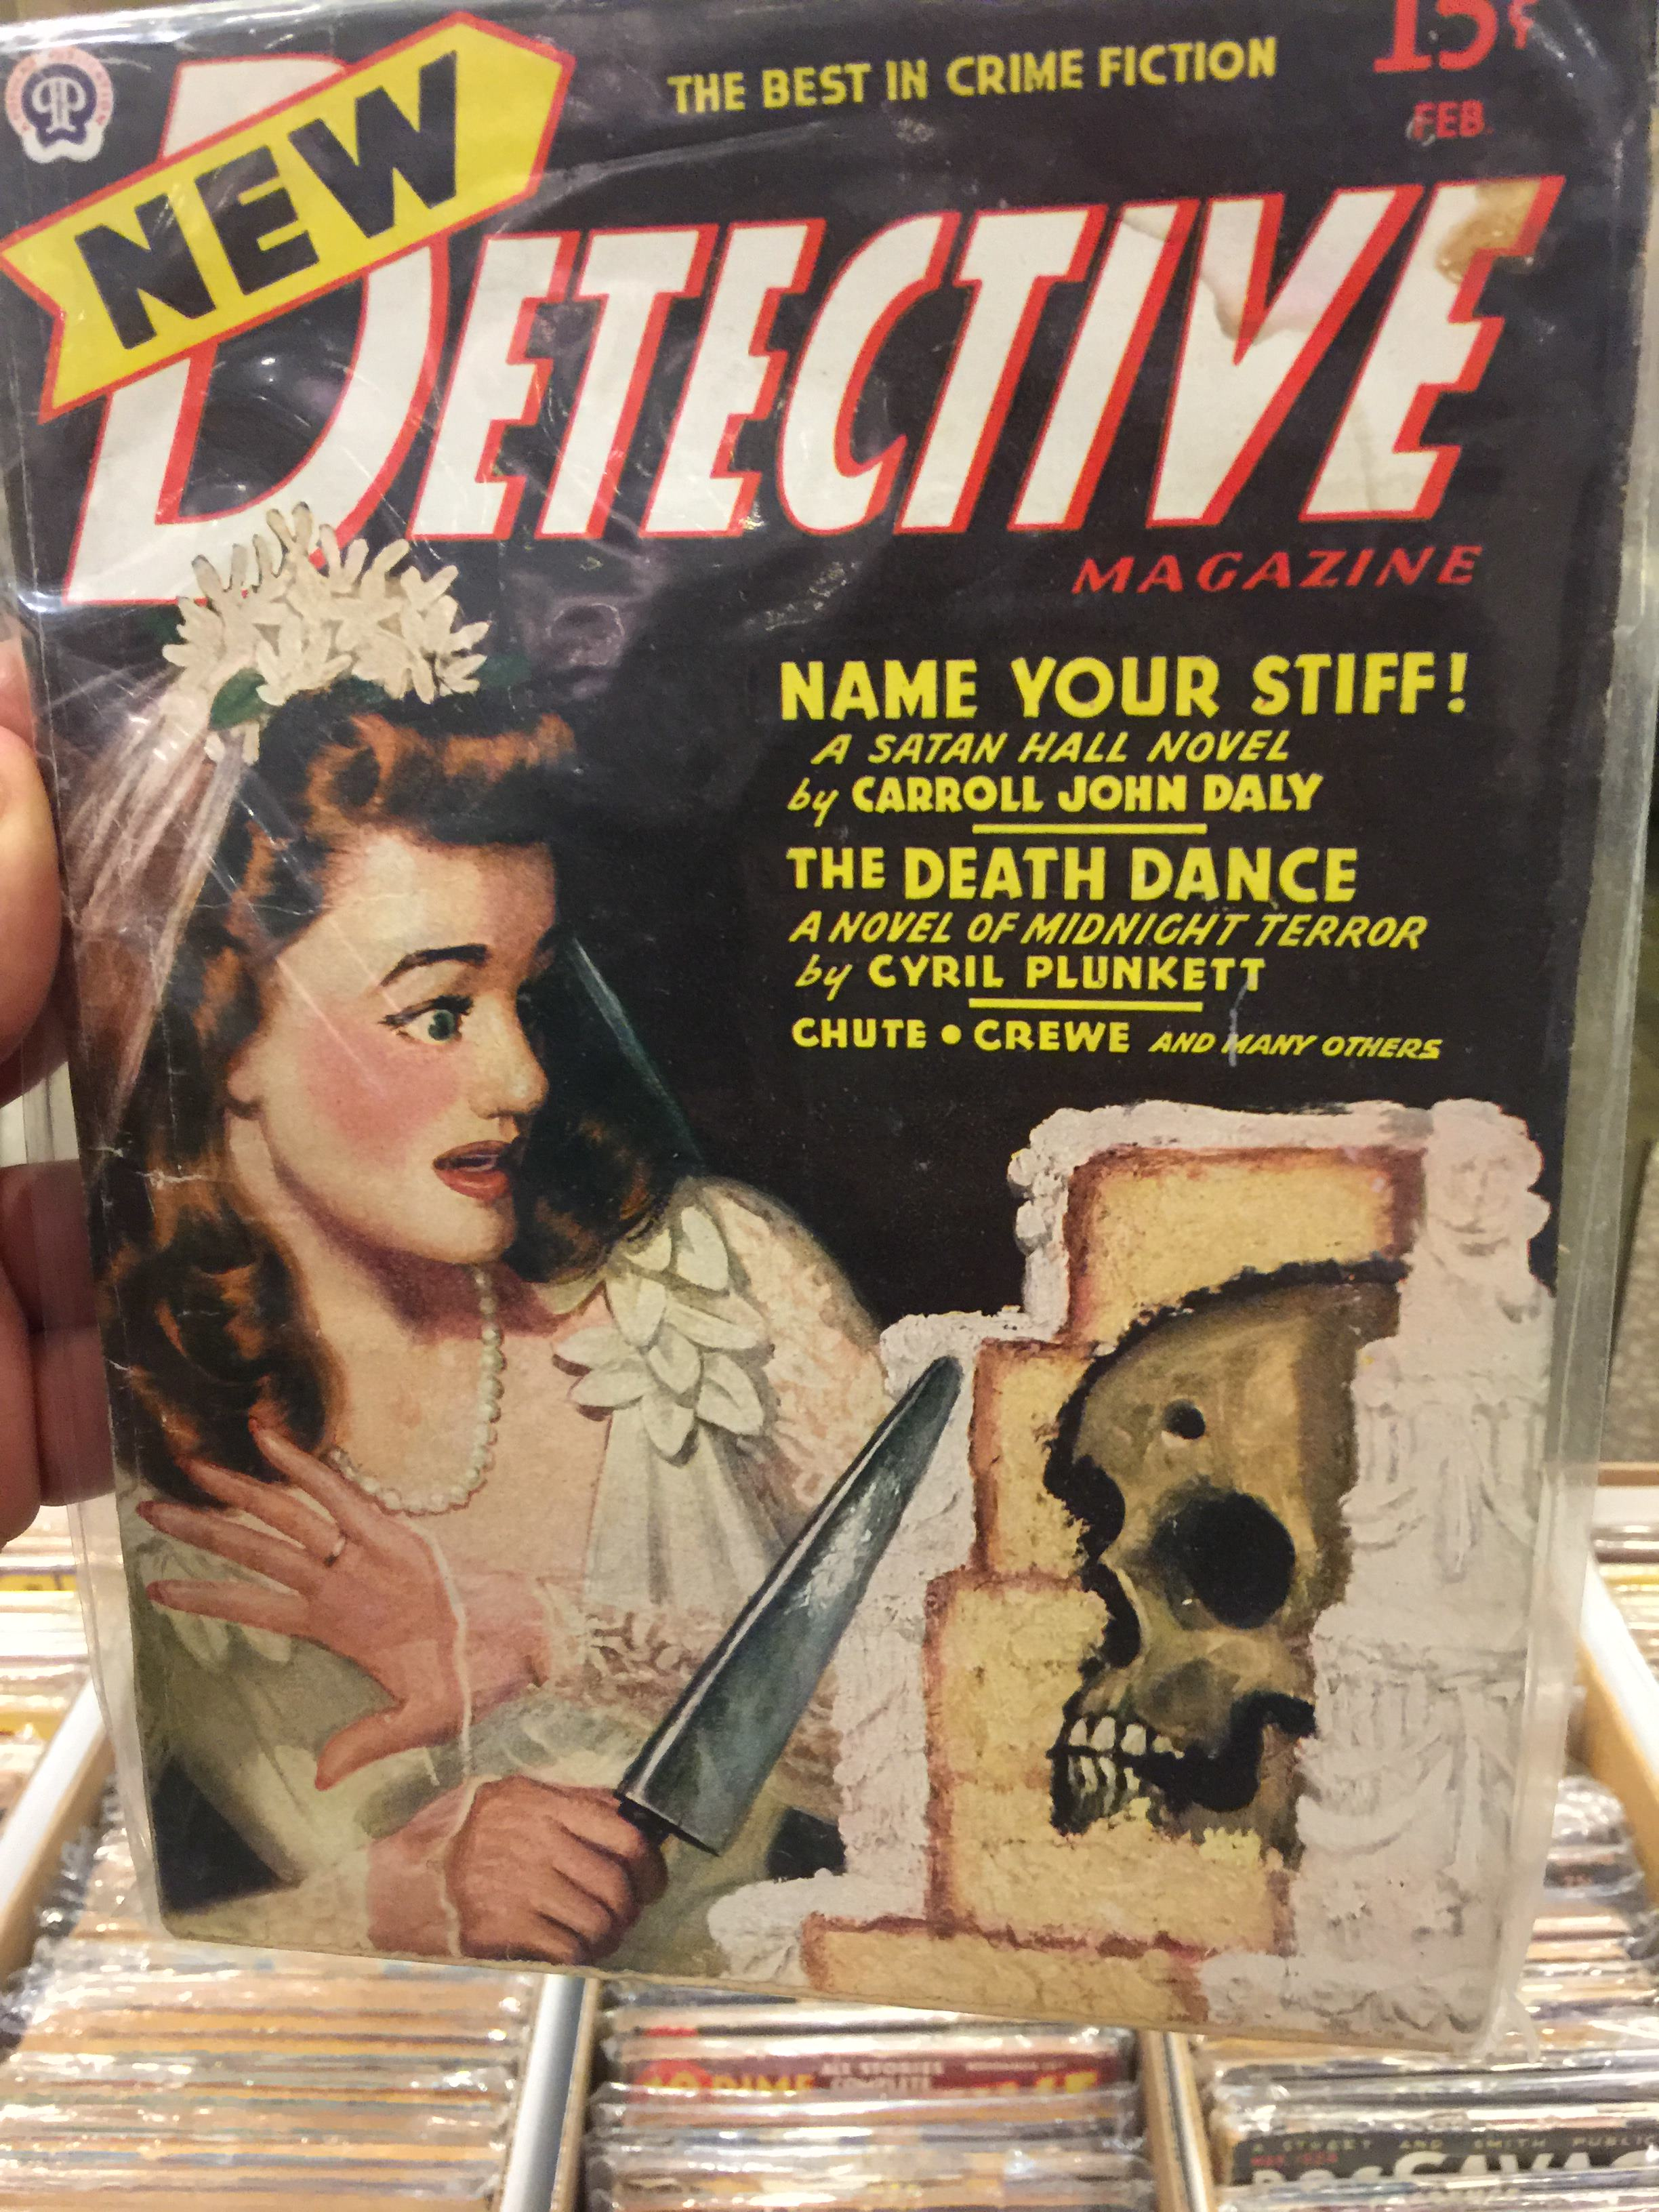 New Detective Magazine, February 1946, Moral of the story: You can't have your cake and eat it too.